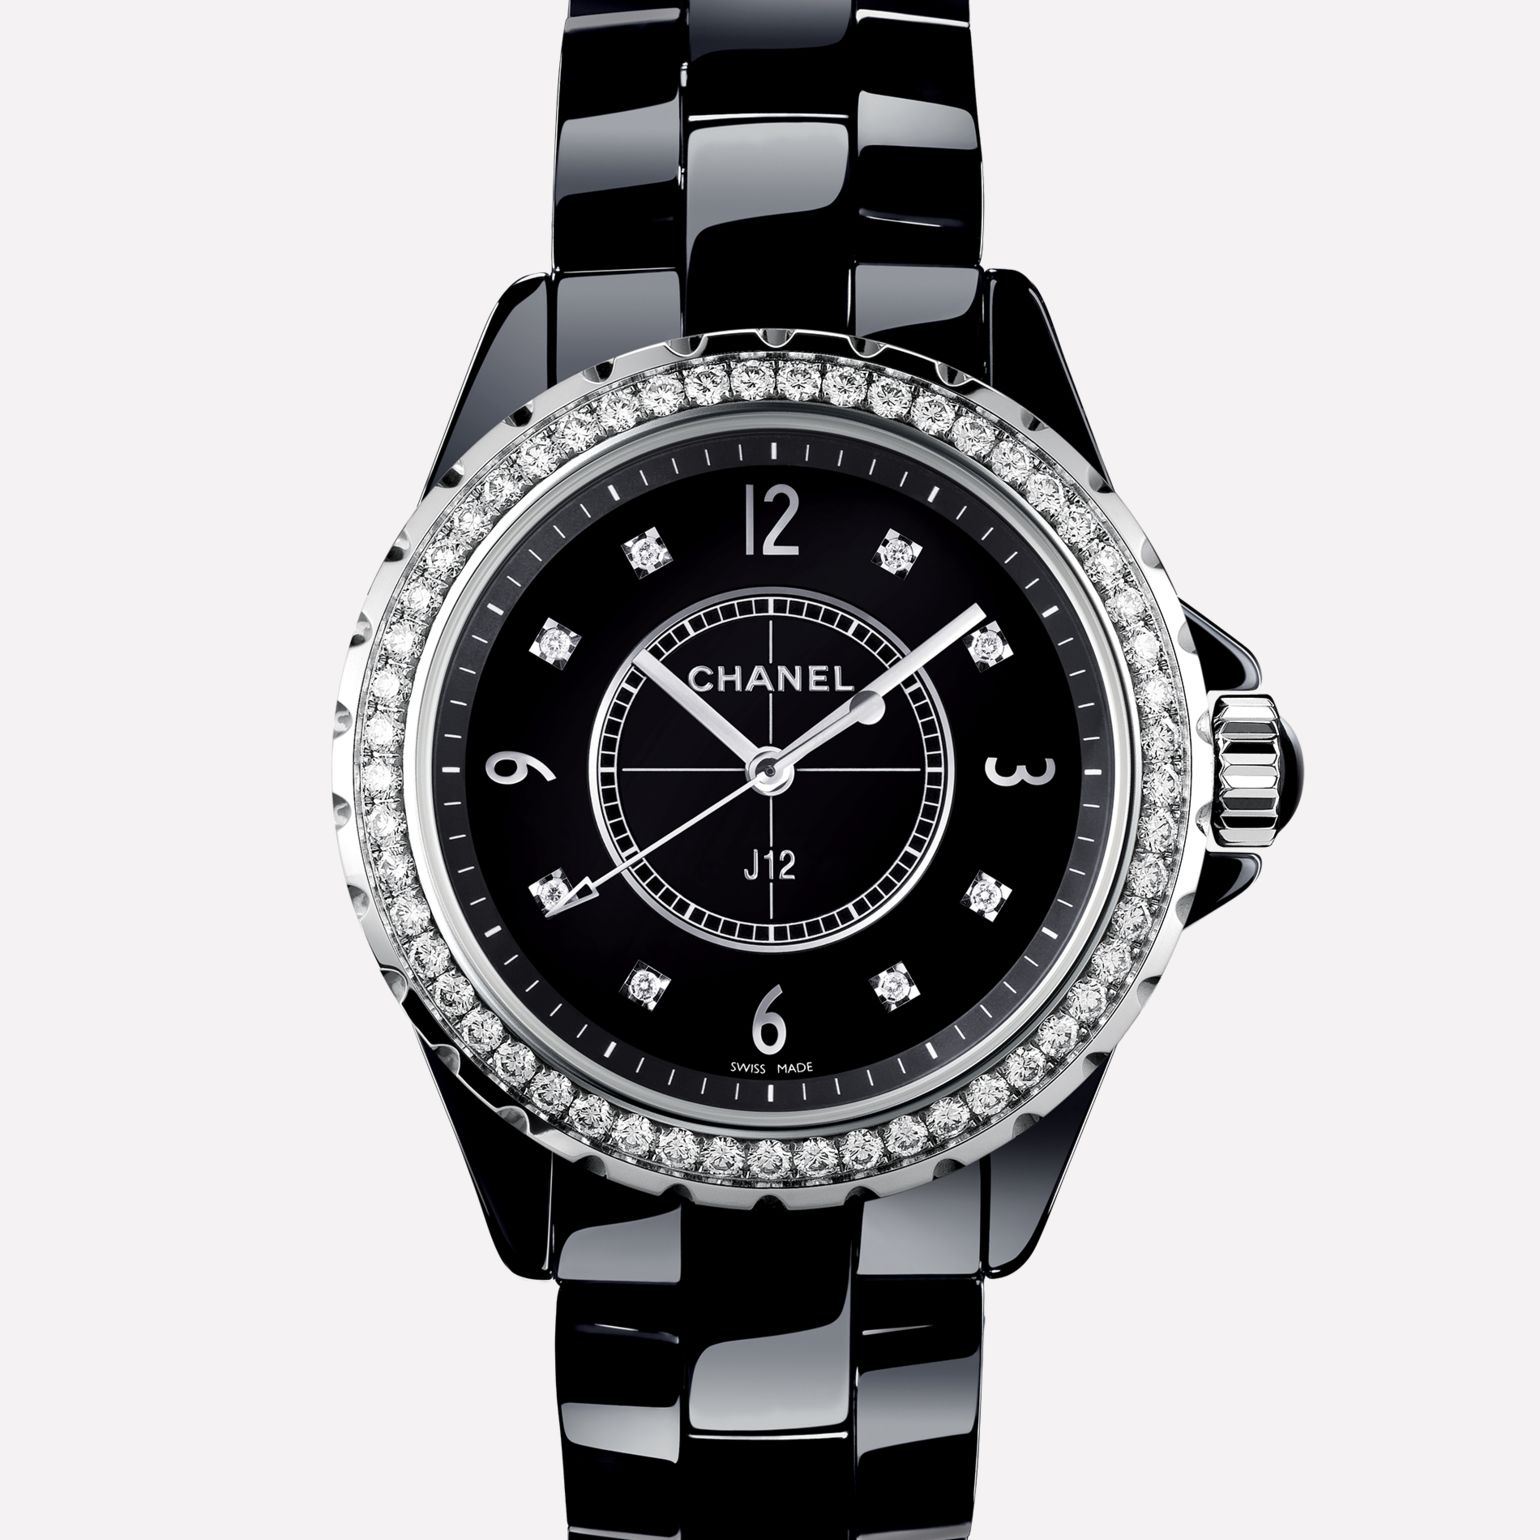 J12 Black highly resistant ceramic and steel, brilliant cut diamond bezel and indicators